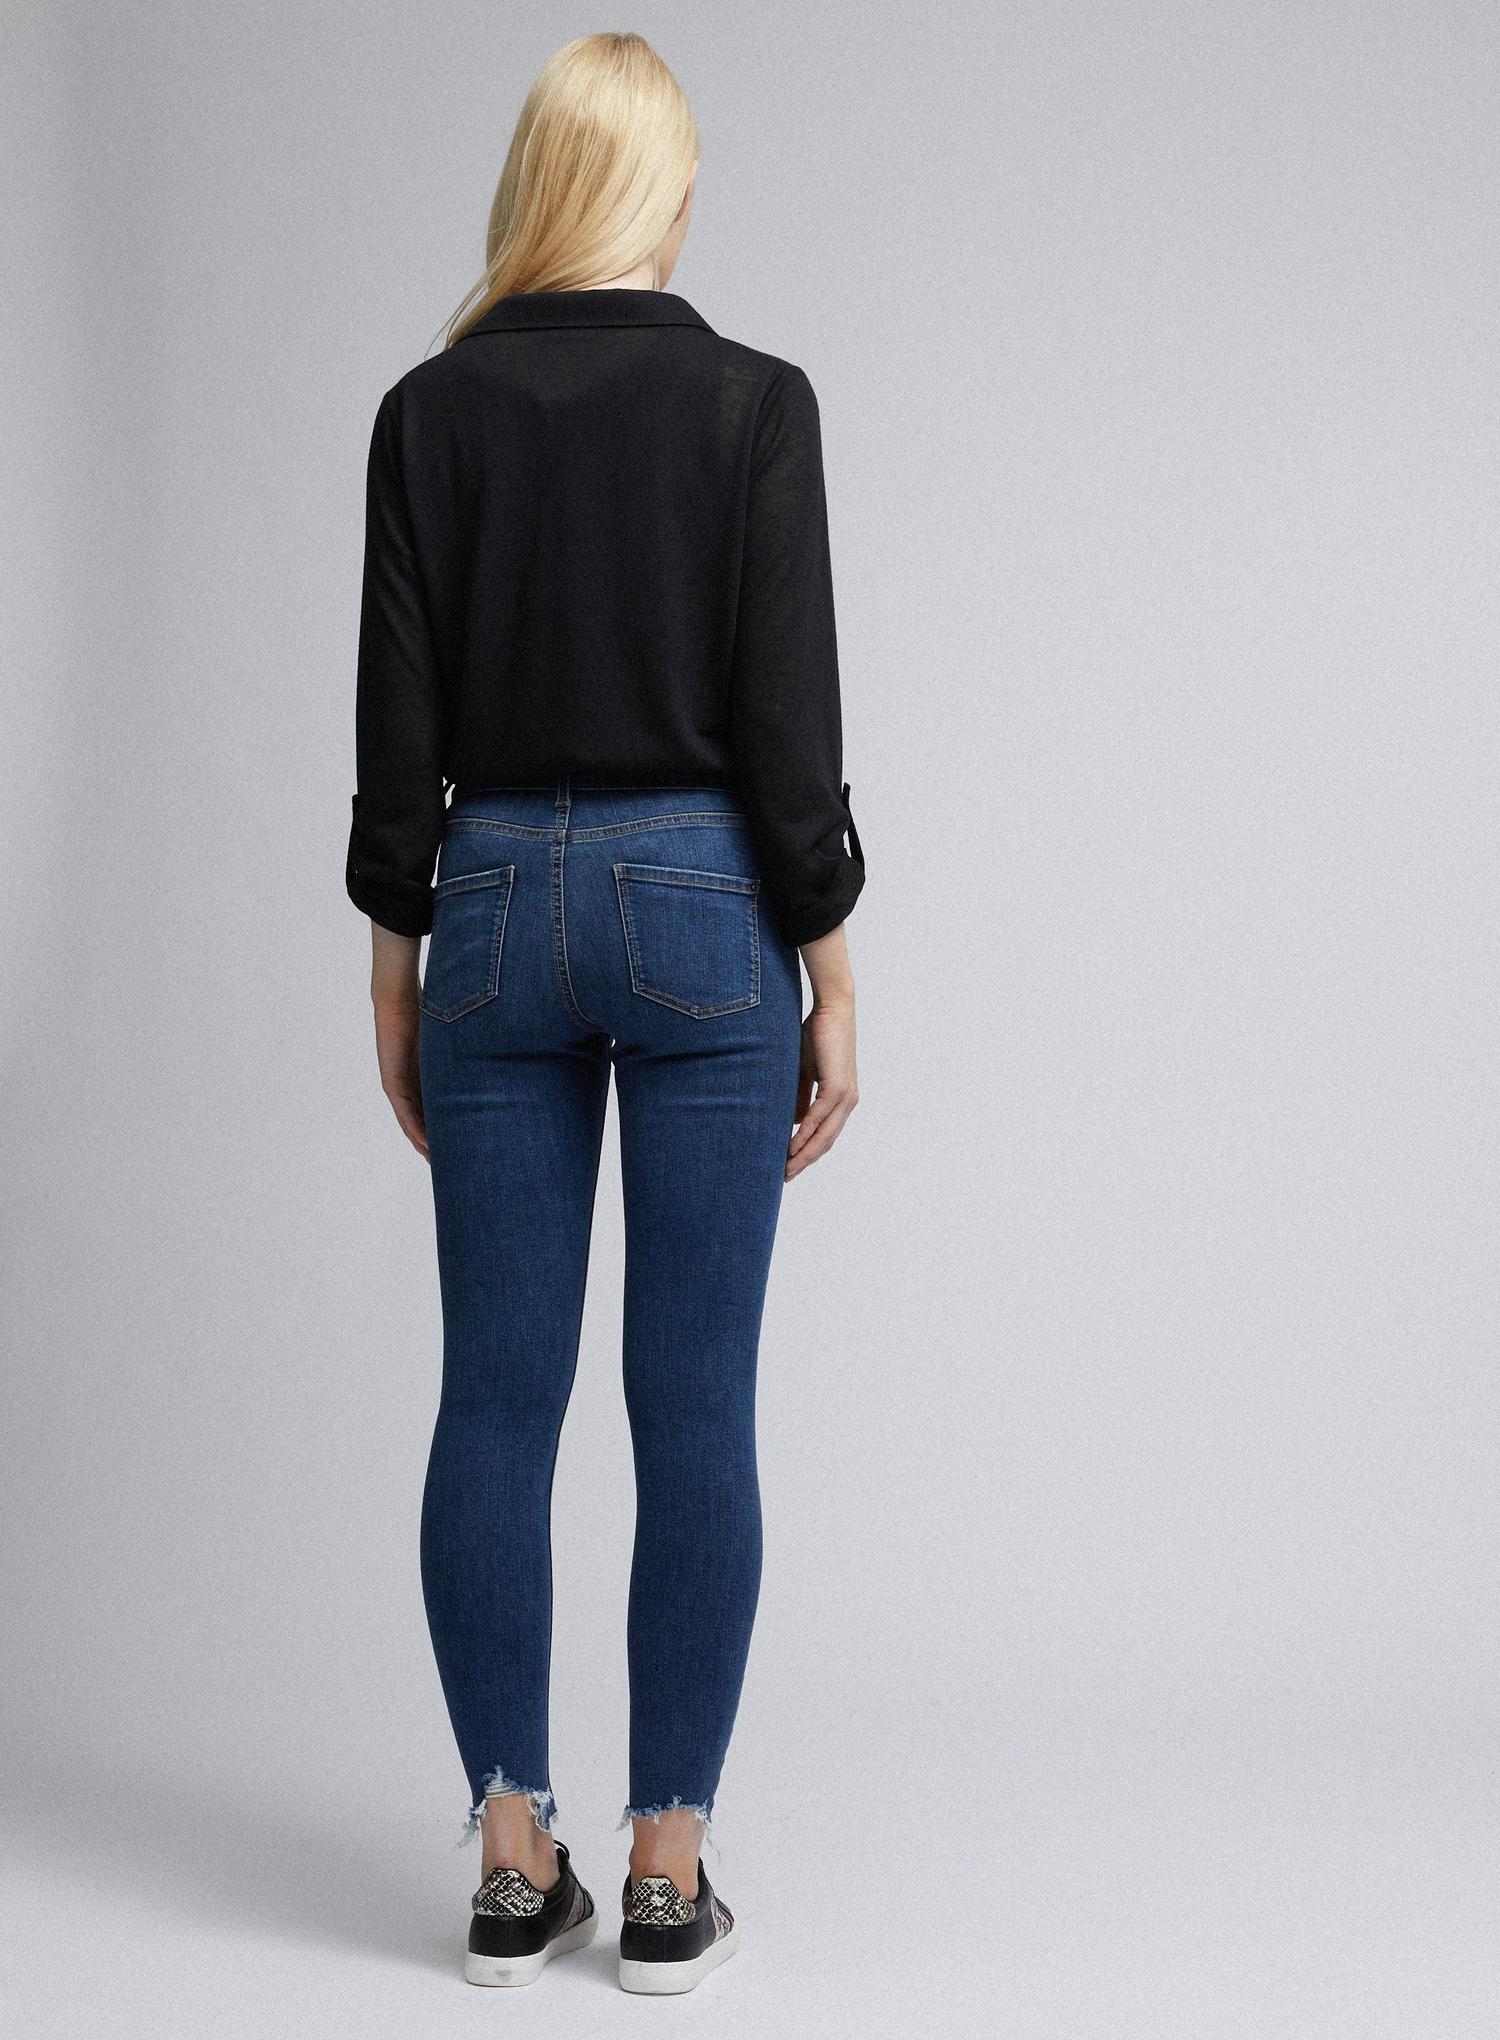 132 Organic Indigo Regular Nibble Darcy Jeans image number 2